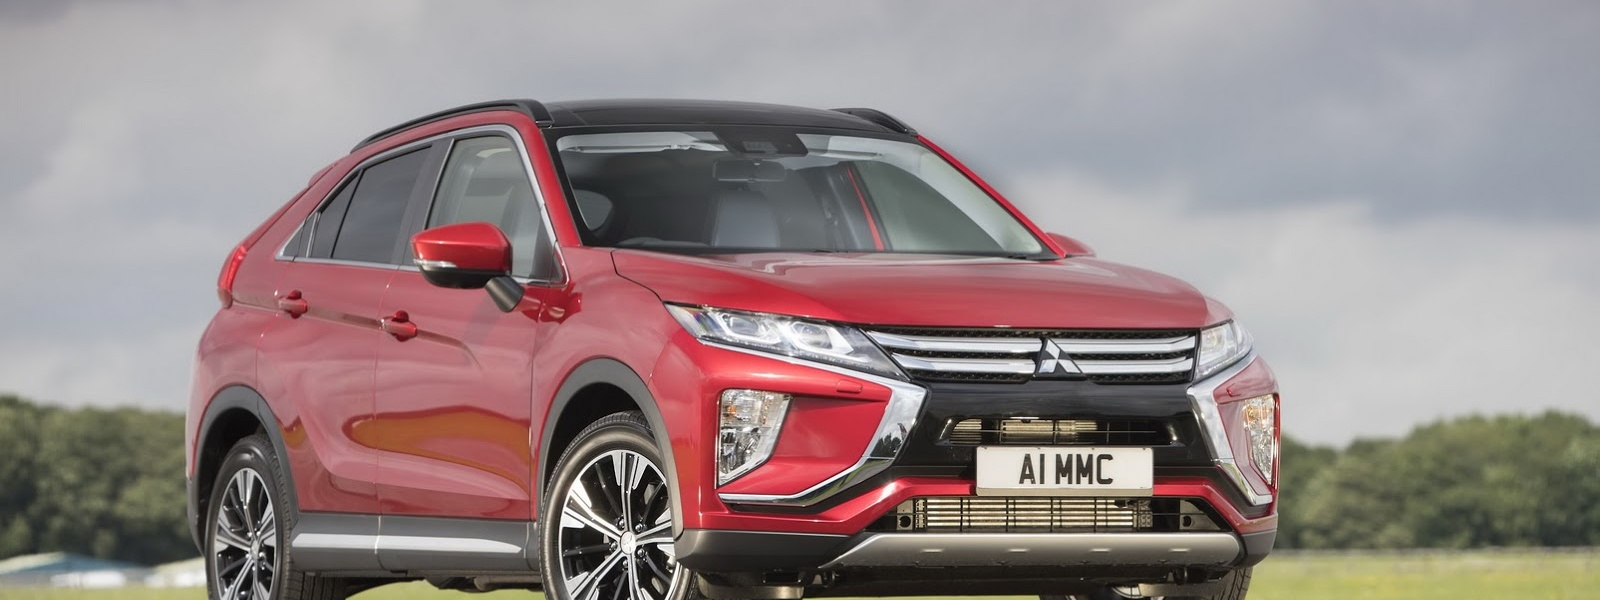 mitsu-eclipse-cross-uk-pricing-1.jpg